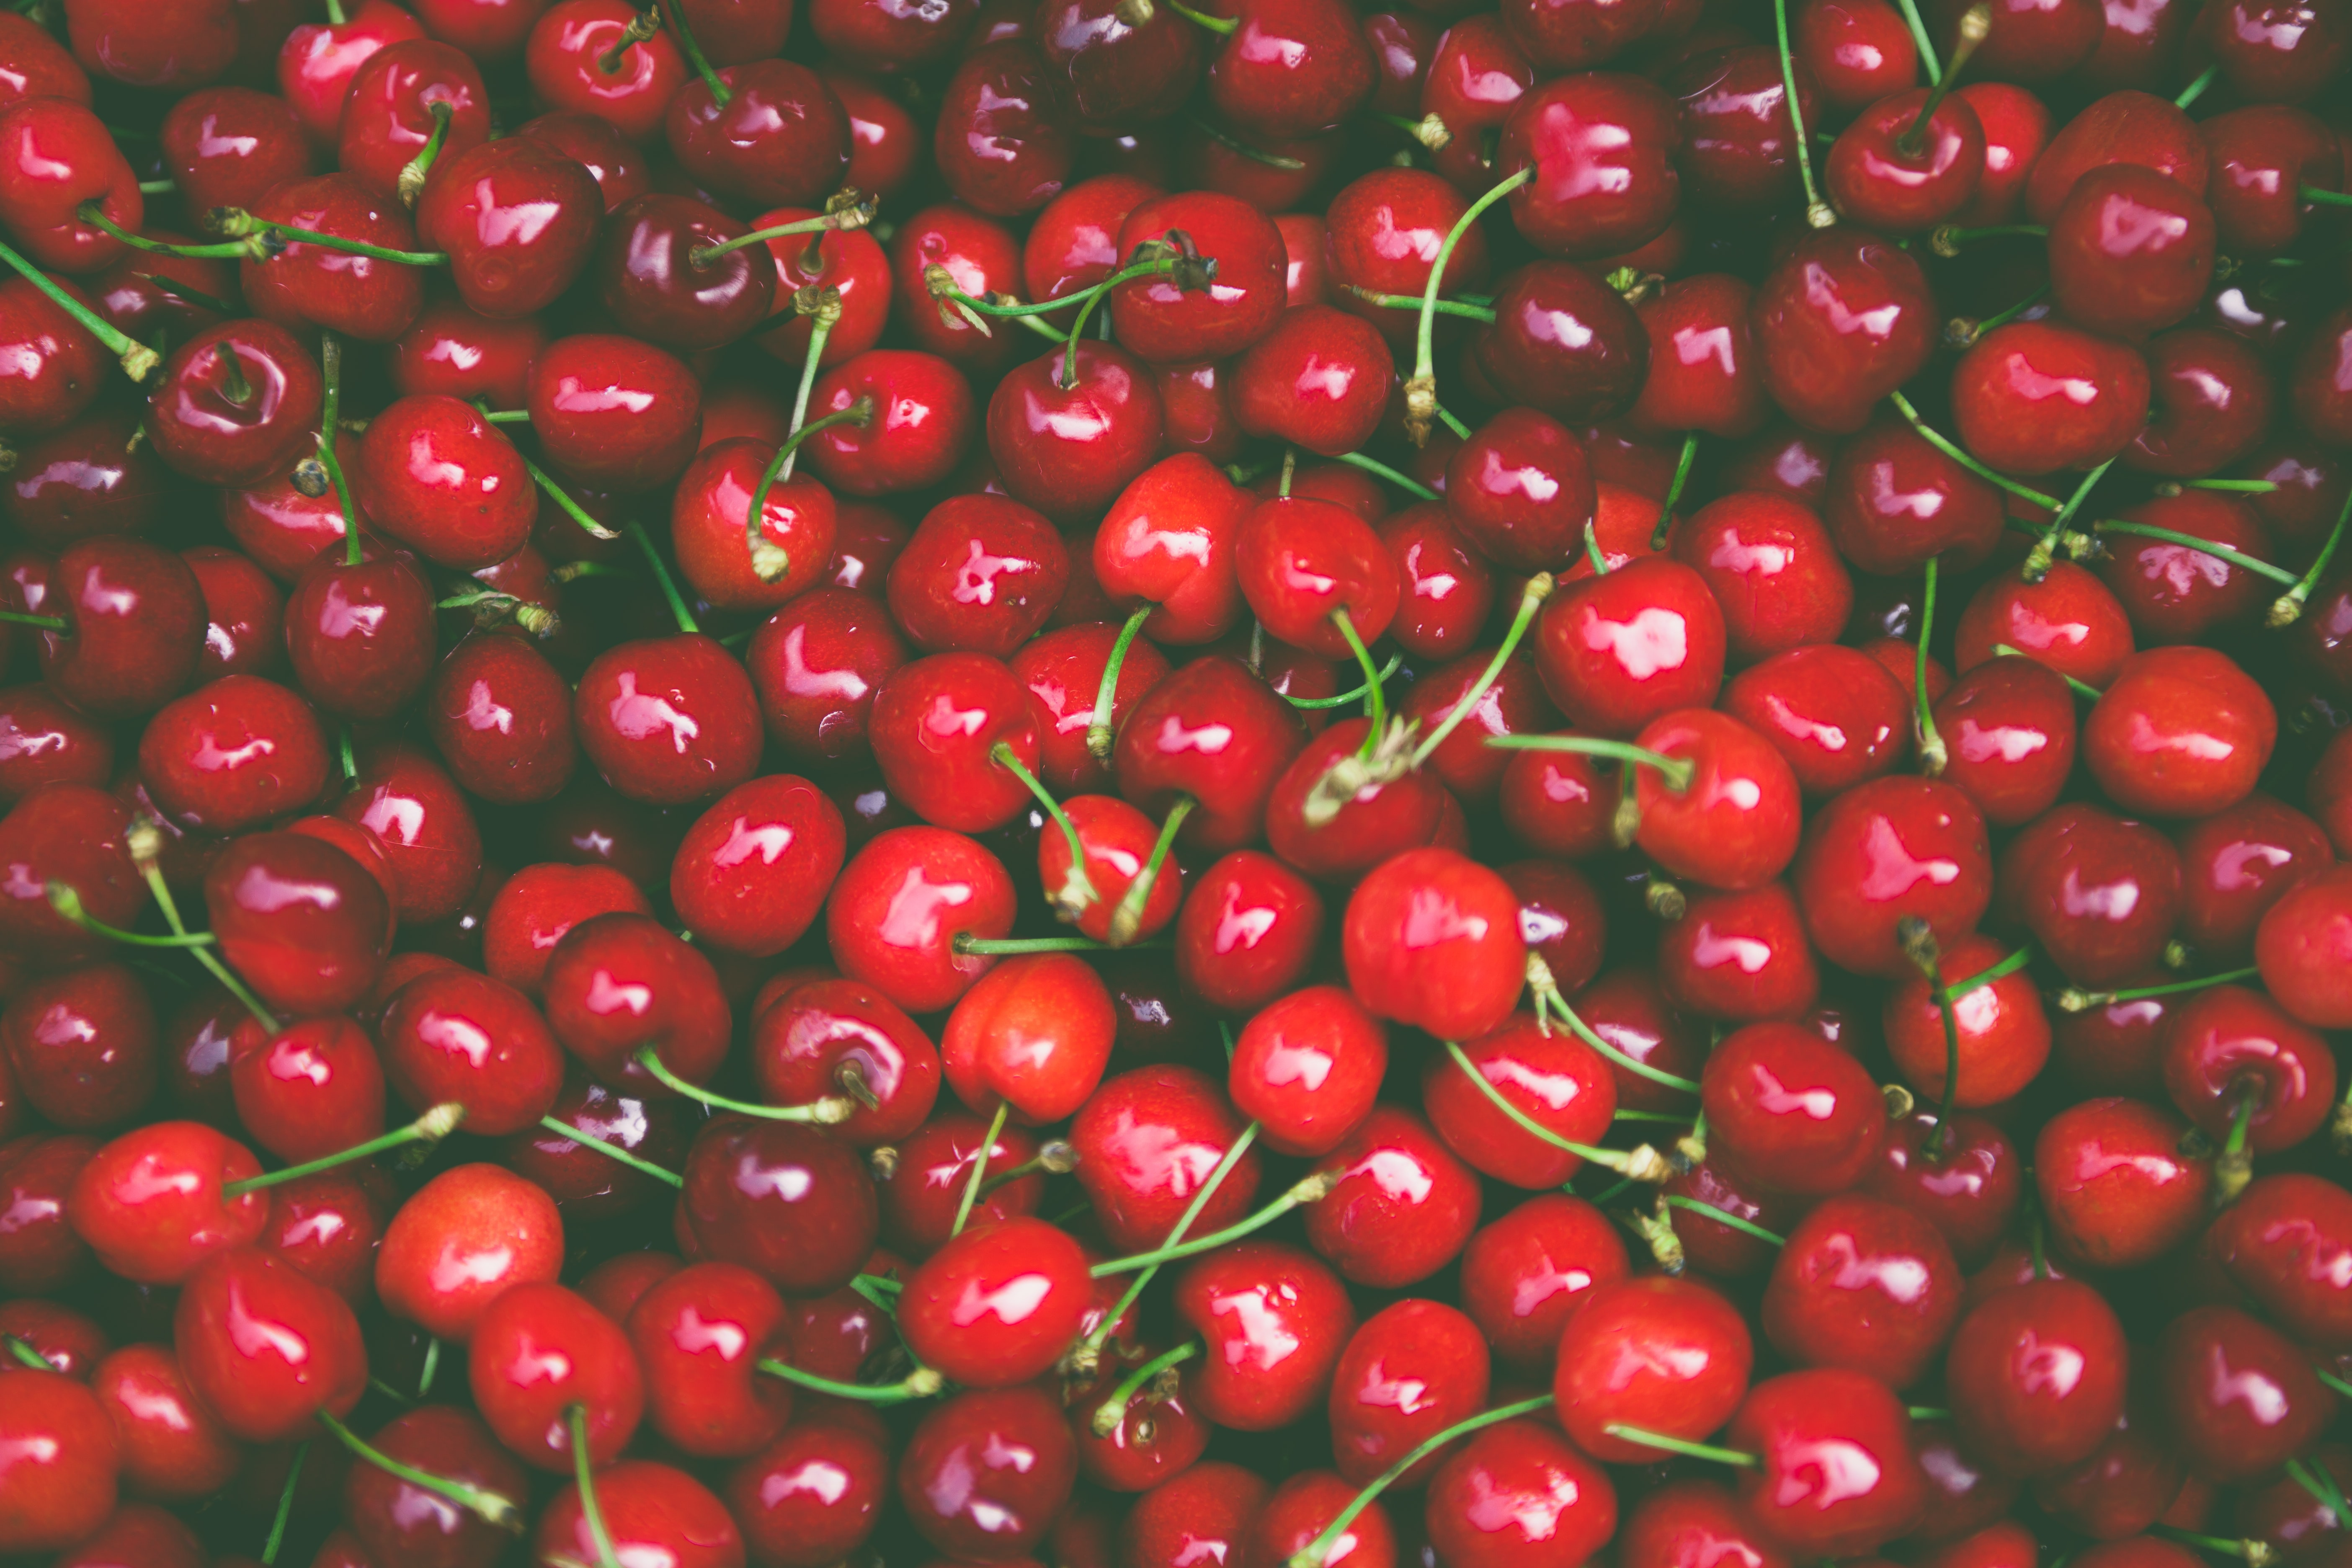 Pile of fresh red cherries on the stem